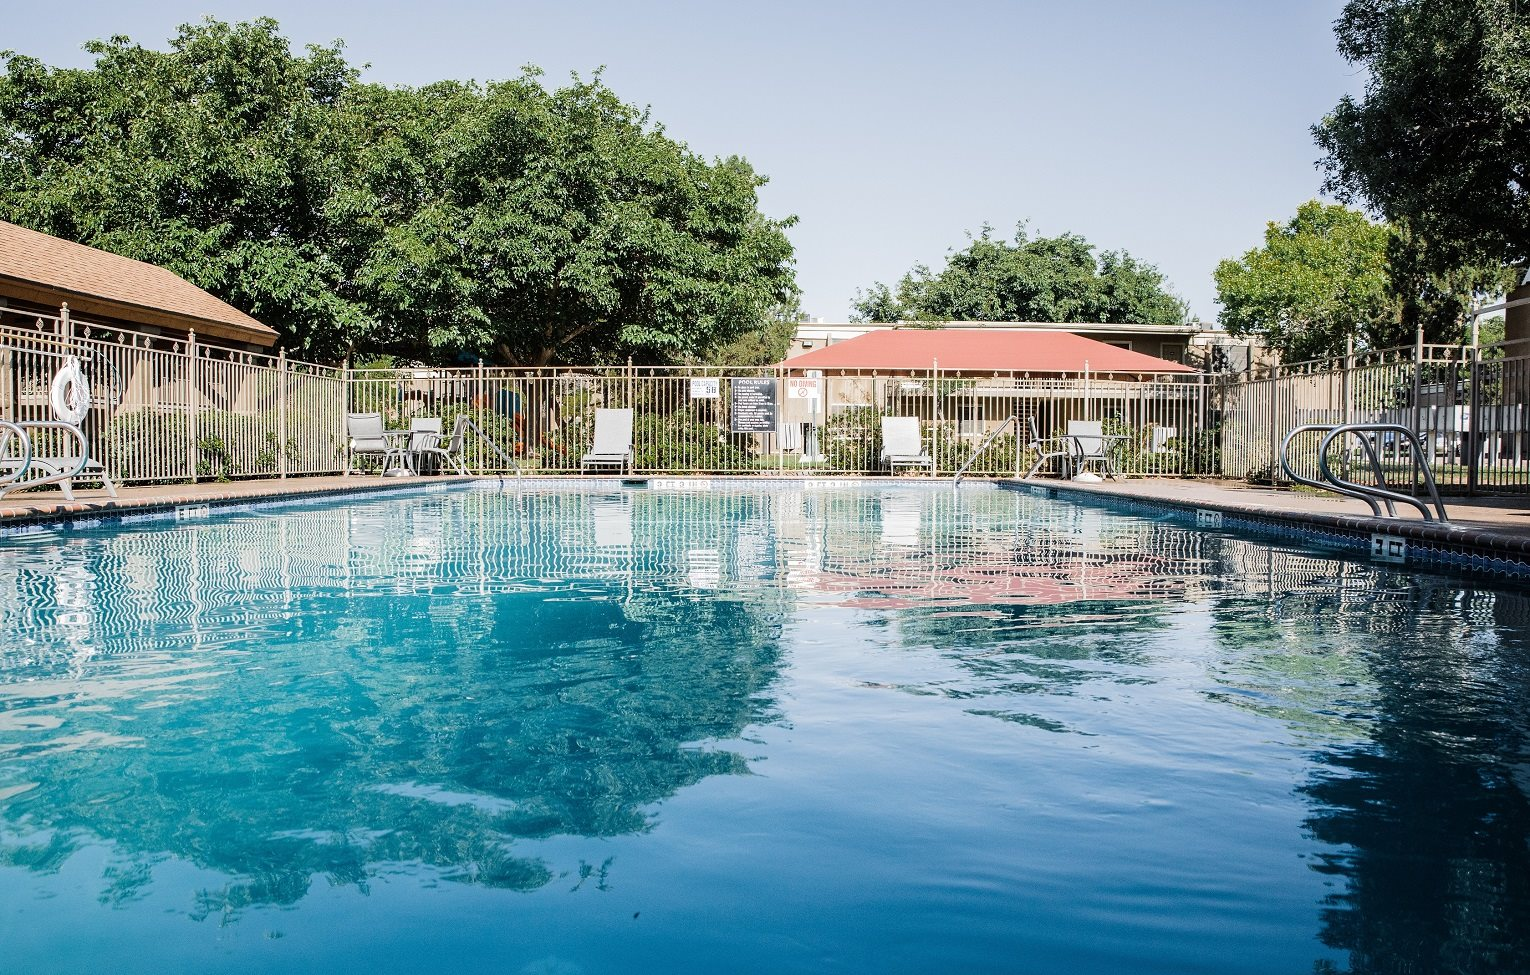 Shimmering pool at Cantera, Texas 79935